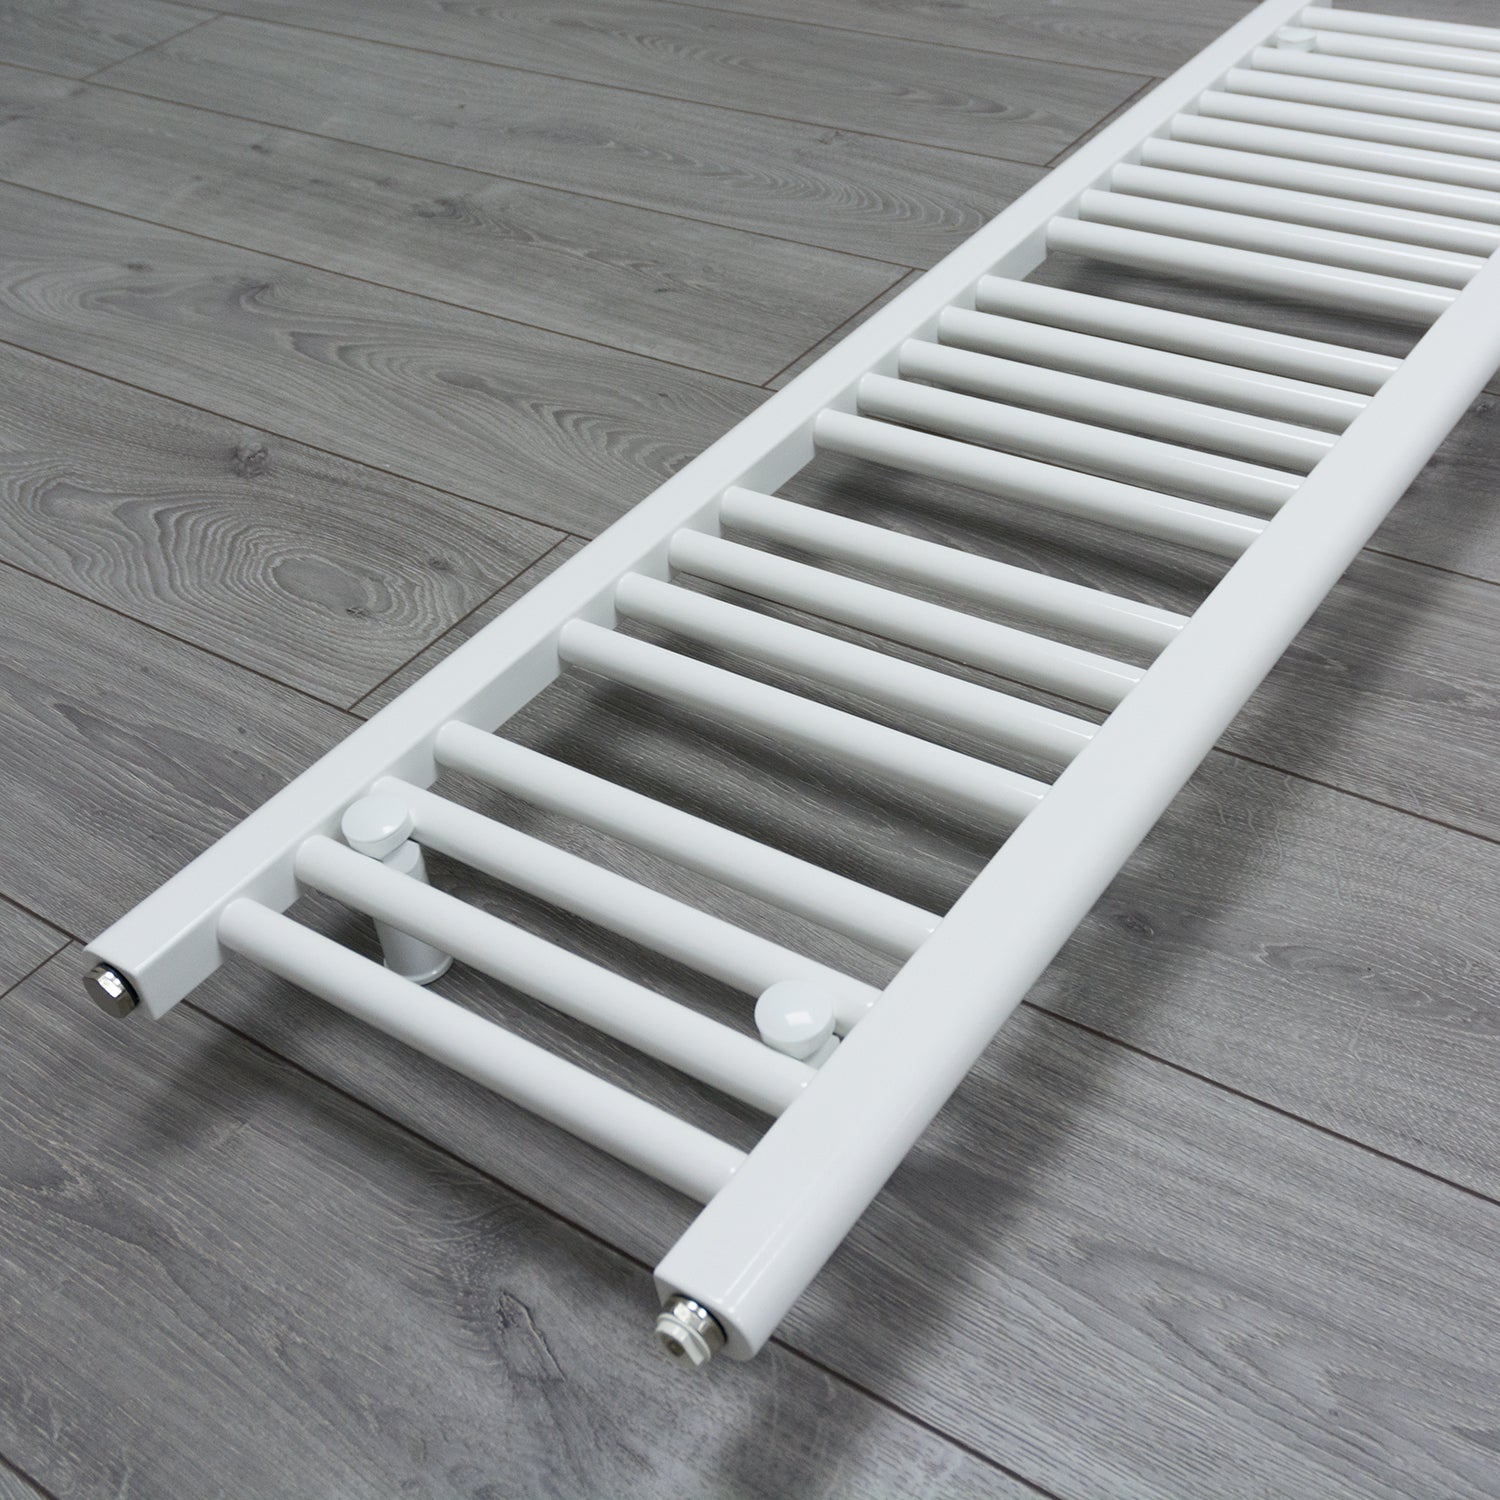 400mm x 400mm White Heated Towel Rail Radiator Close Up Image